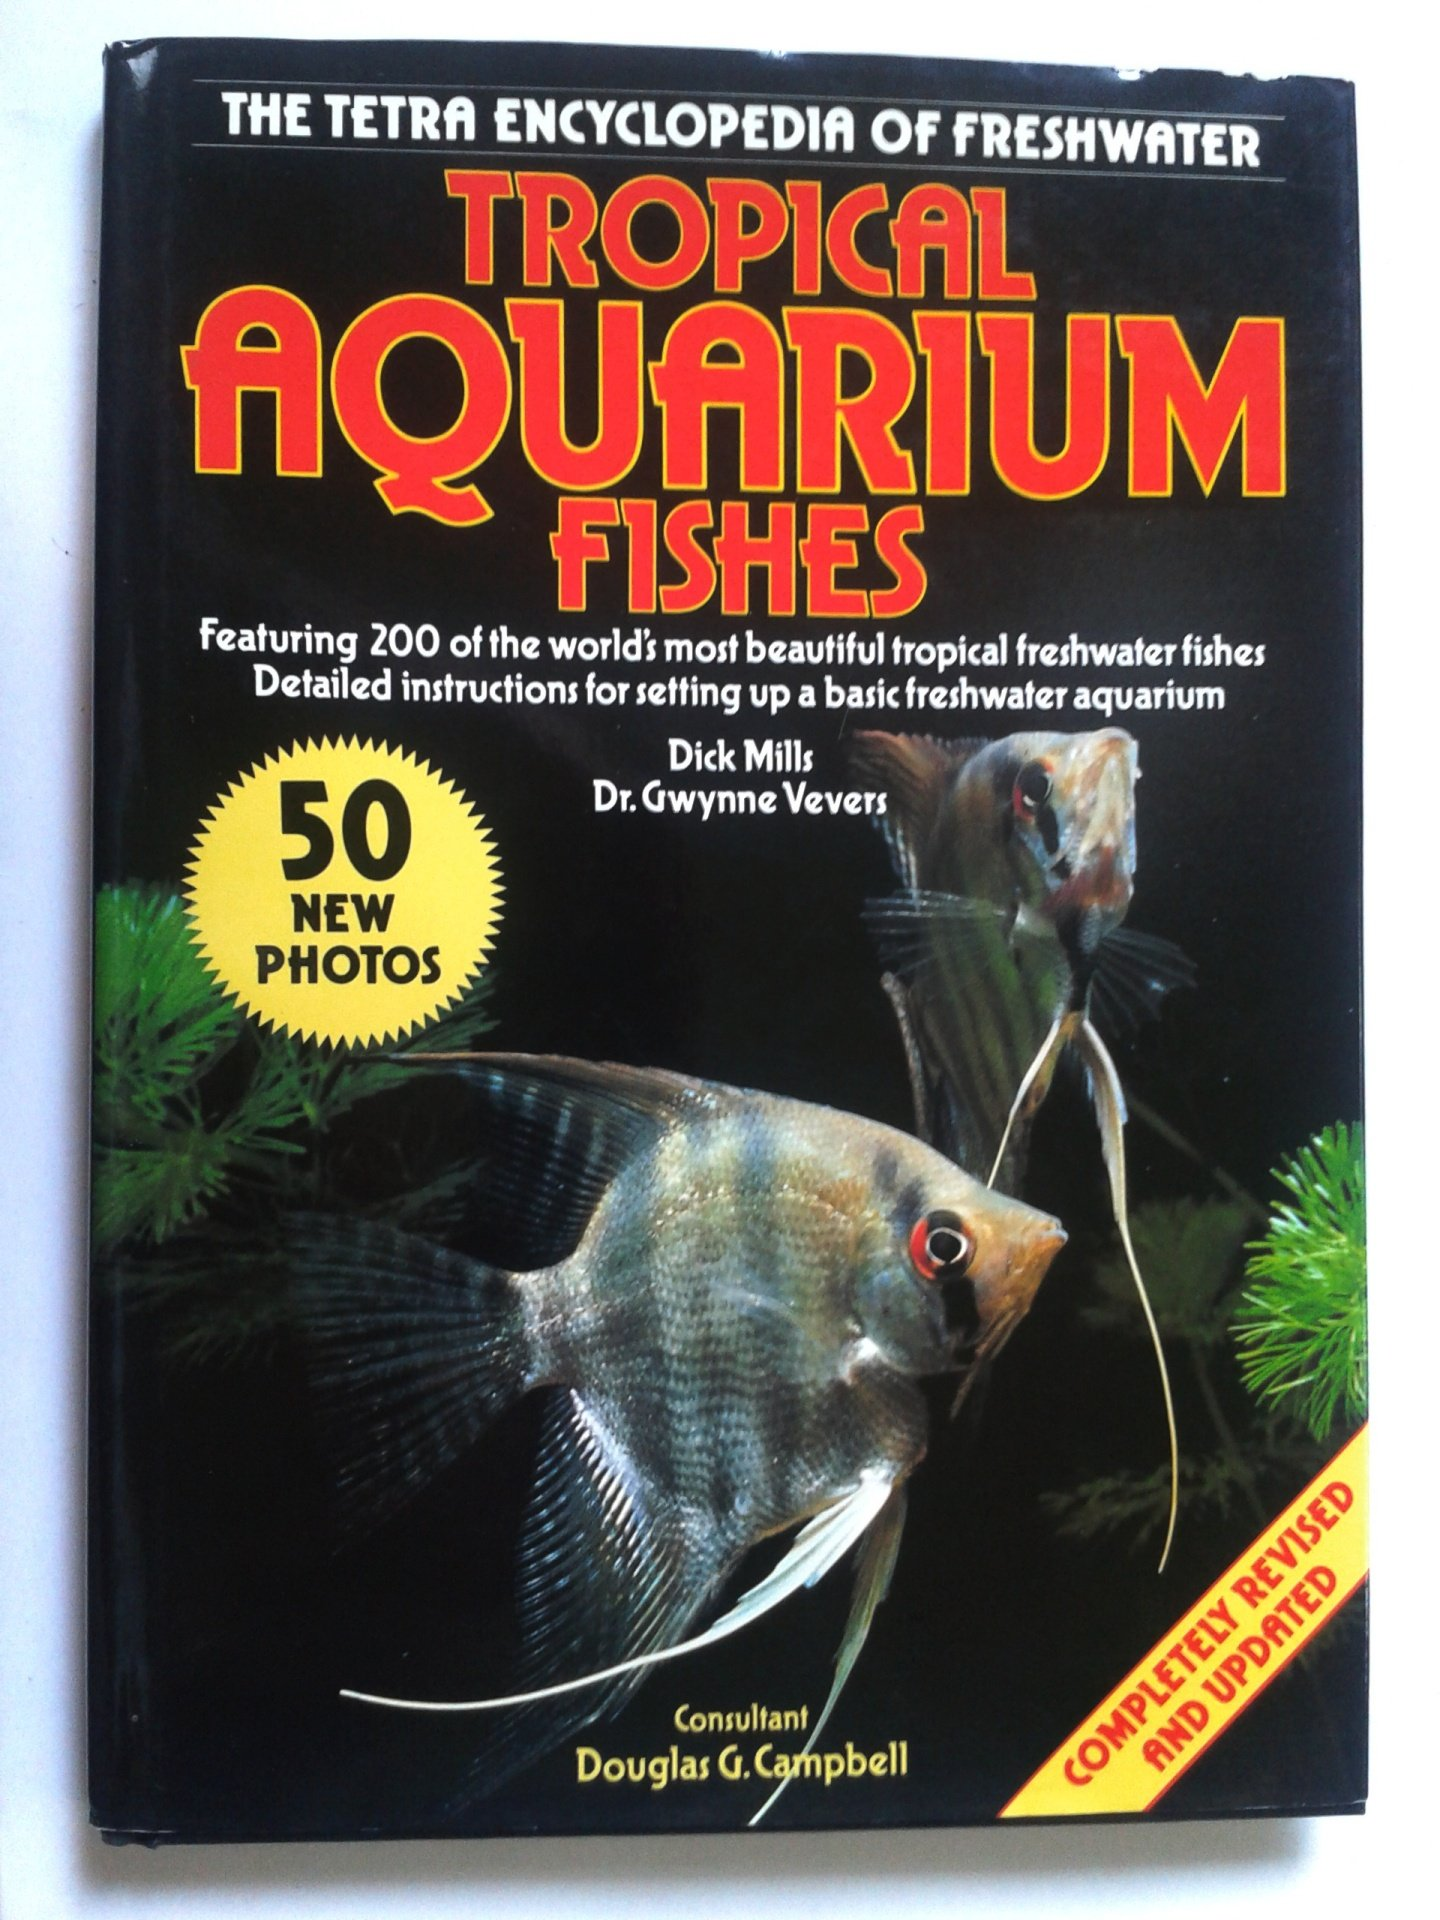 500 freshwater aquarium fish by greg jennings - Tetra Encyclopedia Of Freshwater Tropical Aquarium Fishes D Mills Dick Mills Gwynne Vevers 9781564651310 Amazon Com Books